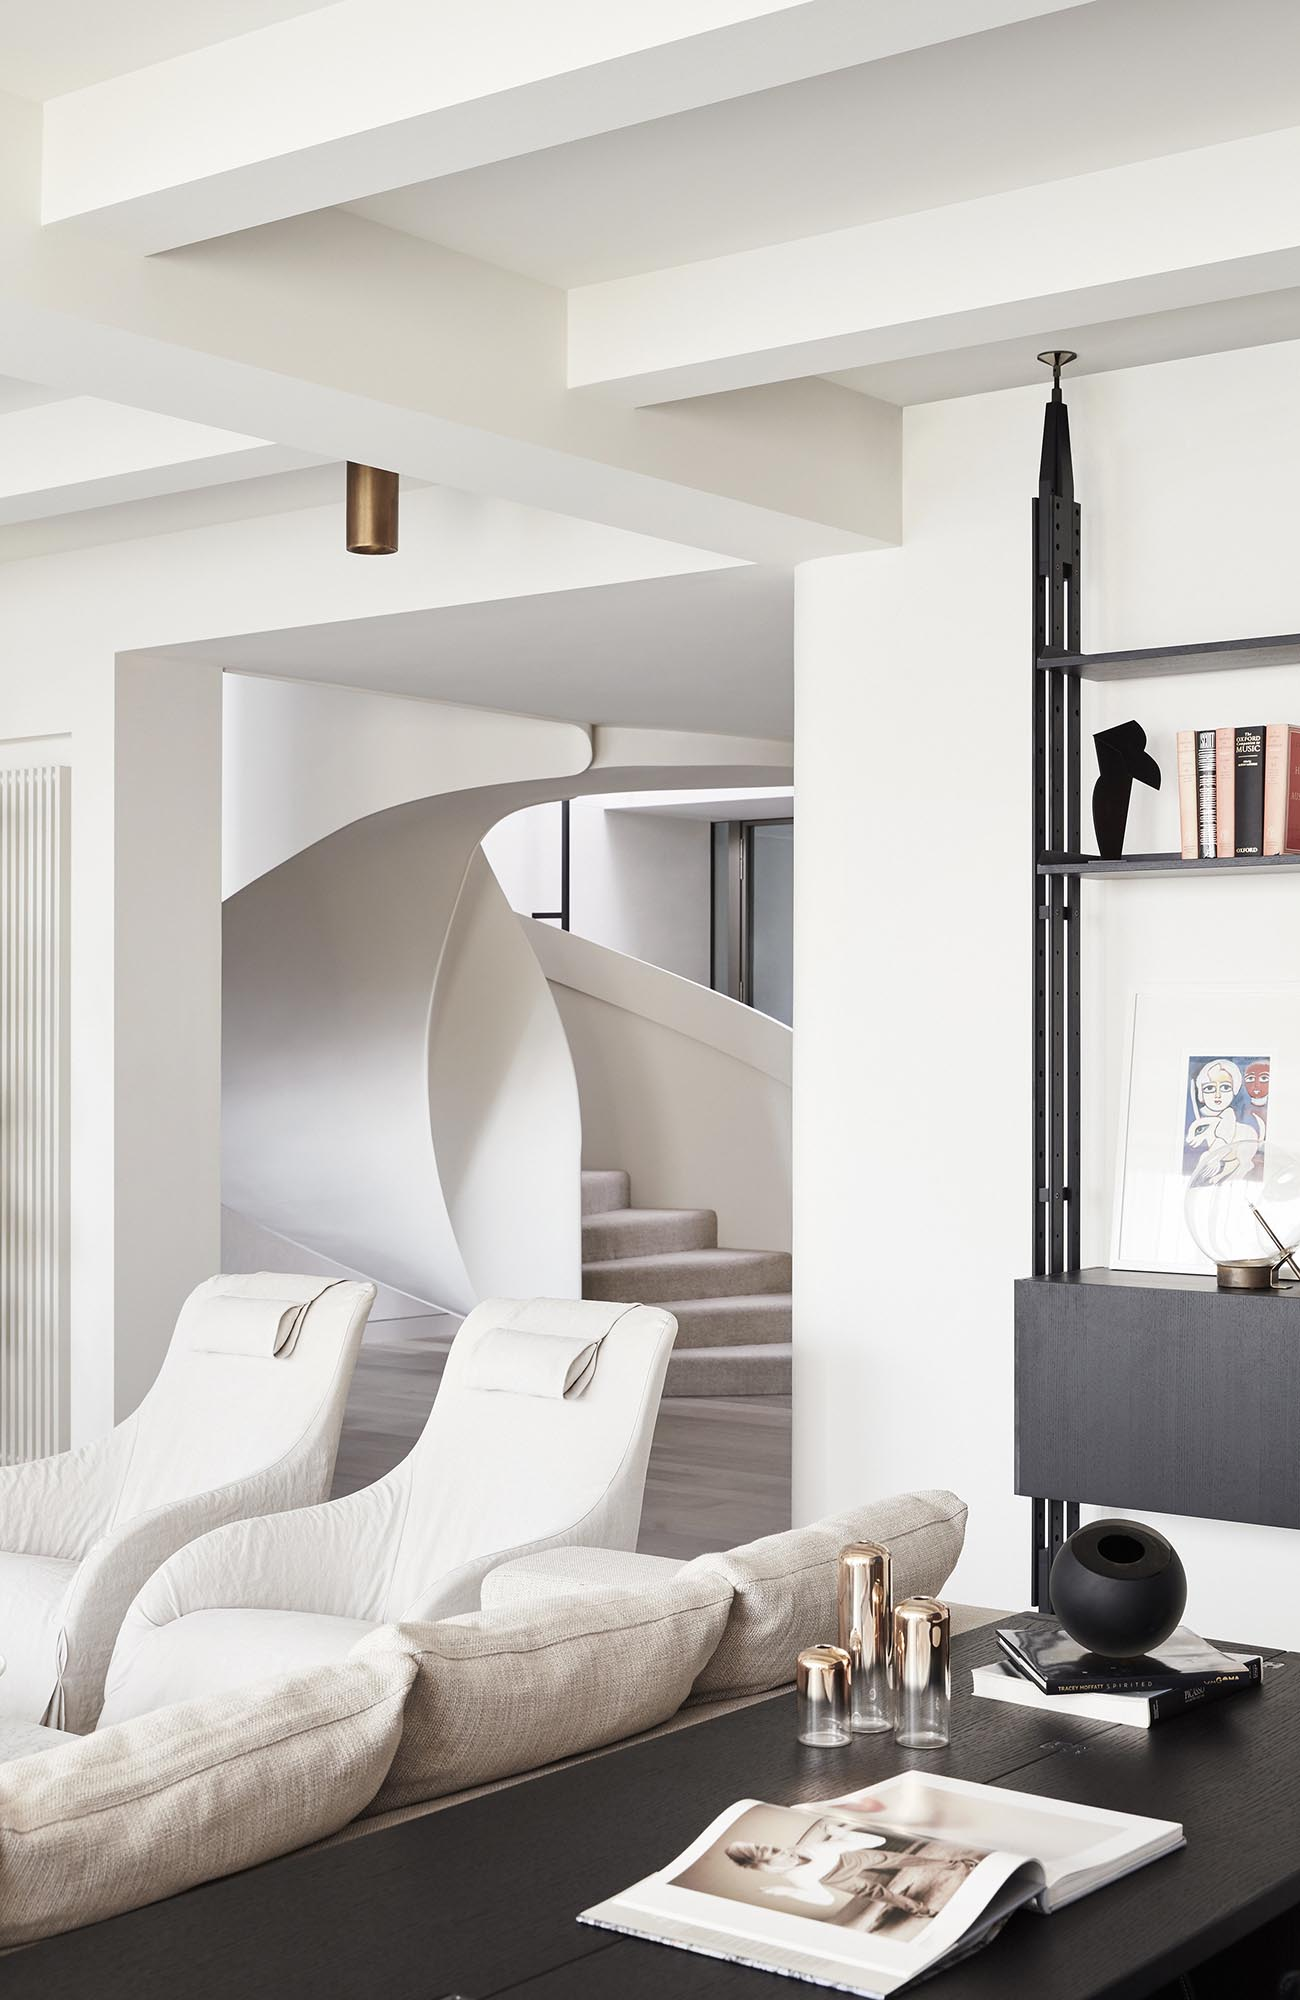 A modern interior with bright furniture and white spiral stairs.